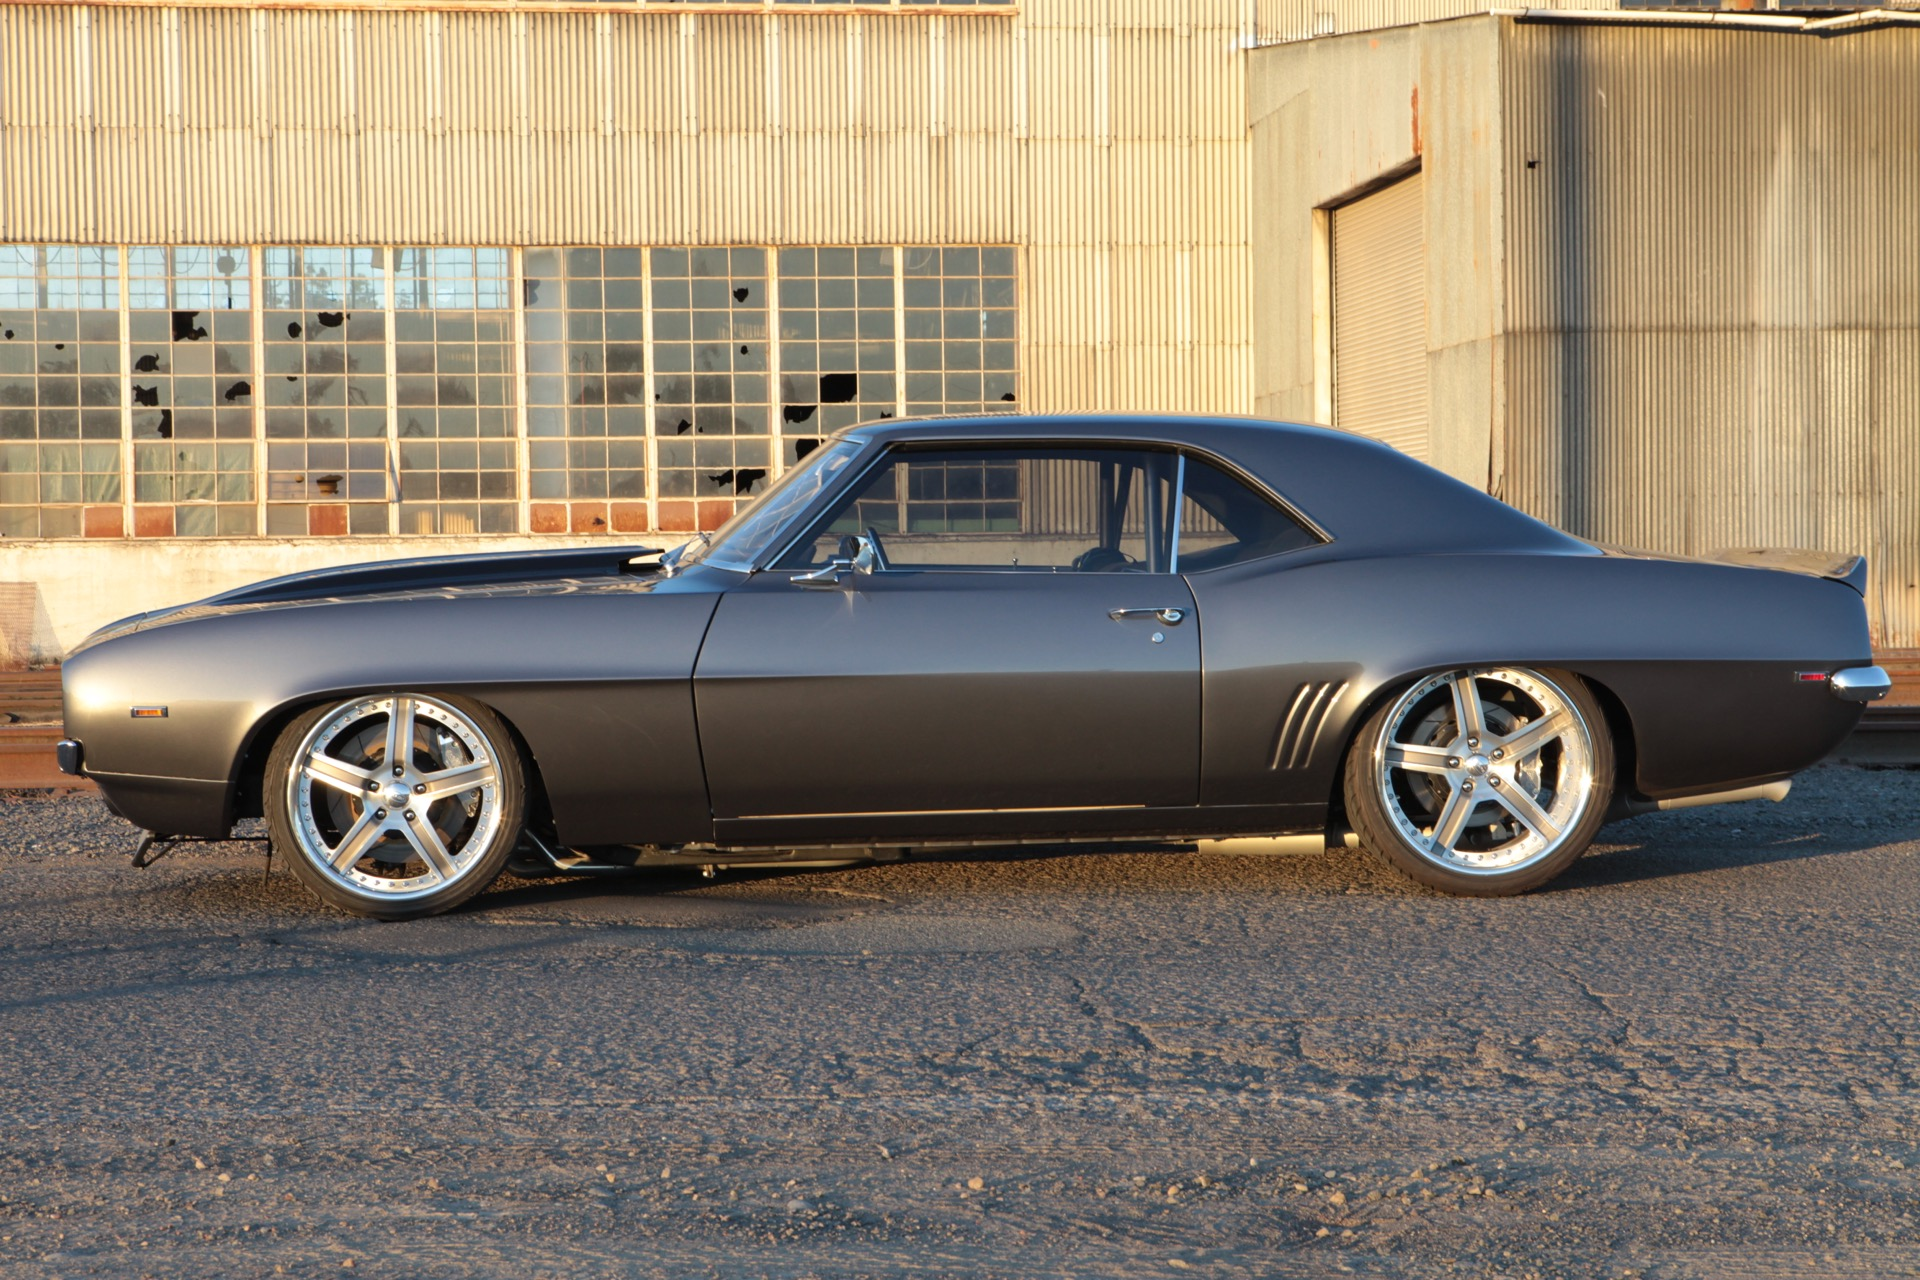 Pro Touring Builds - MetalWorks Classic Auto Restoration & Speed Shop